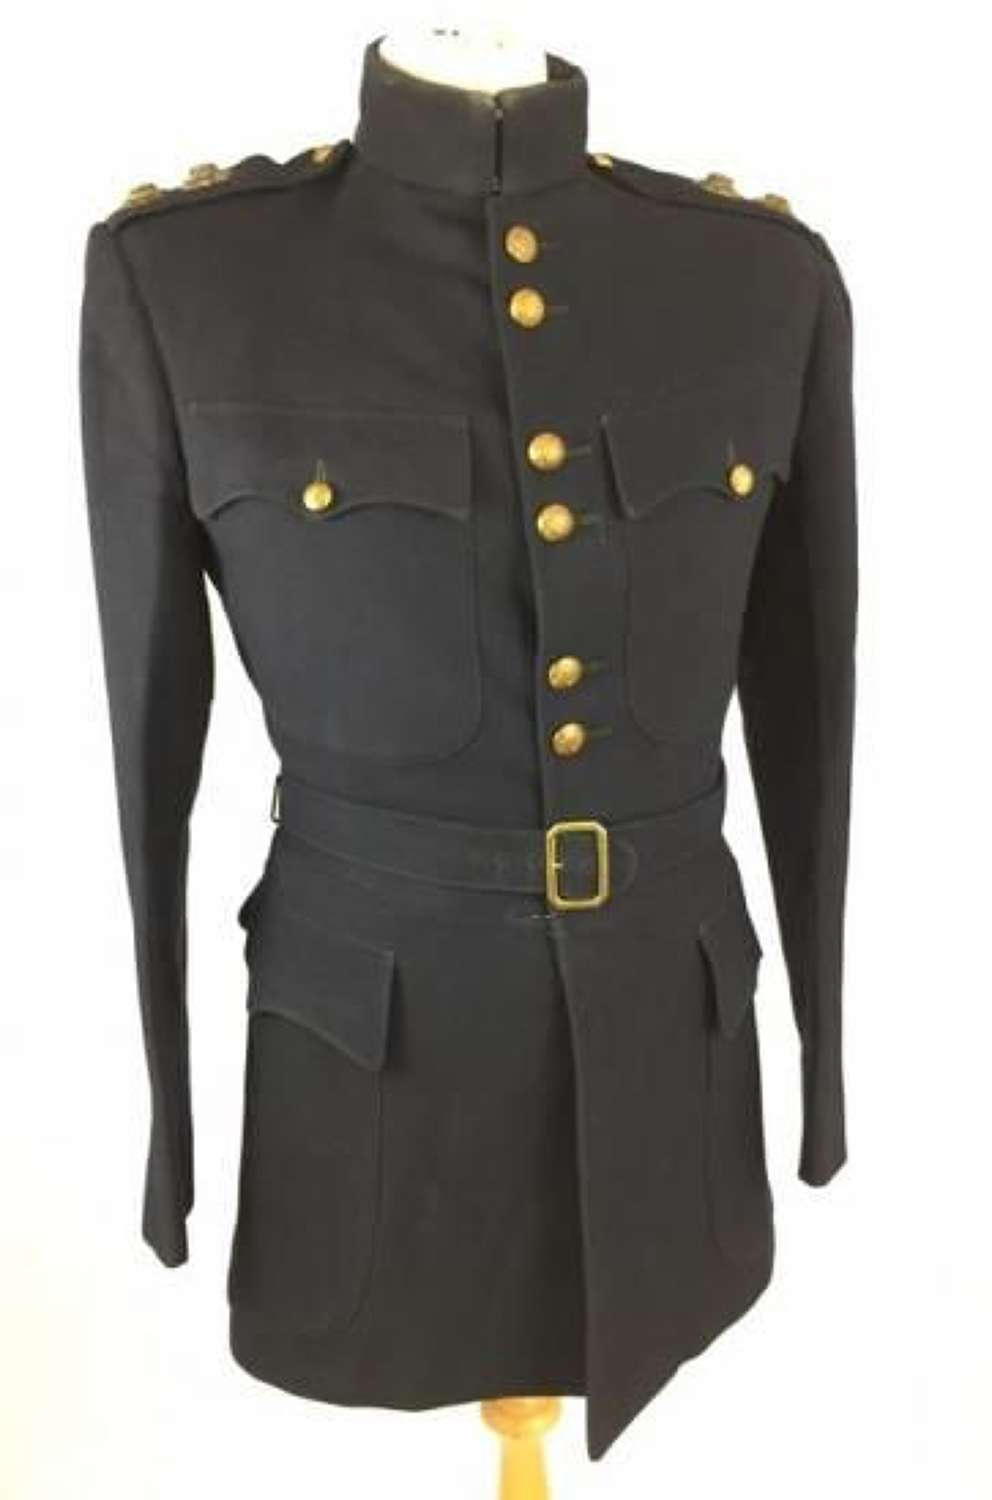 Pre Second World War Coldstream Guards Officers Tunic and Trousers with BEF History